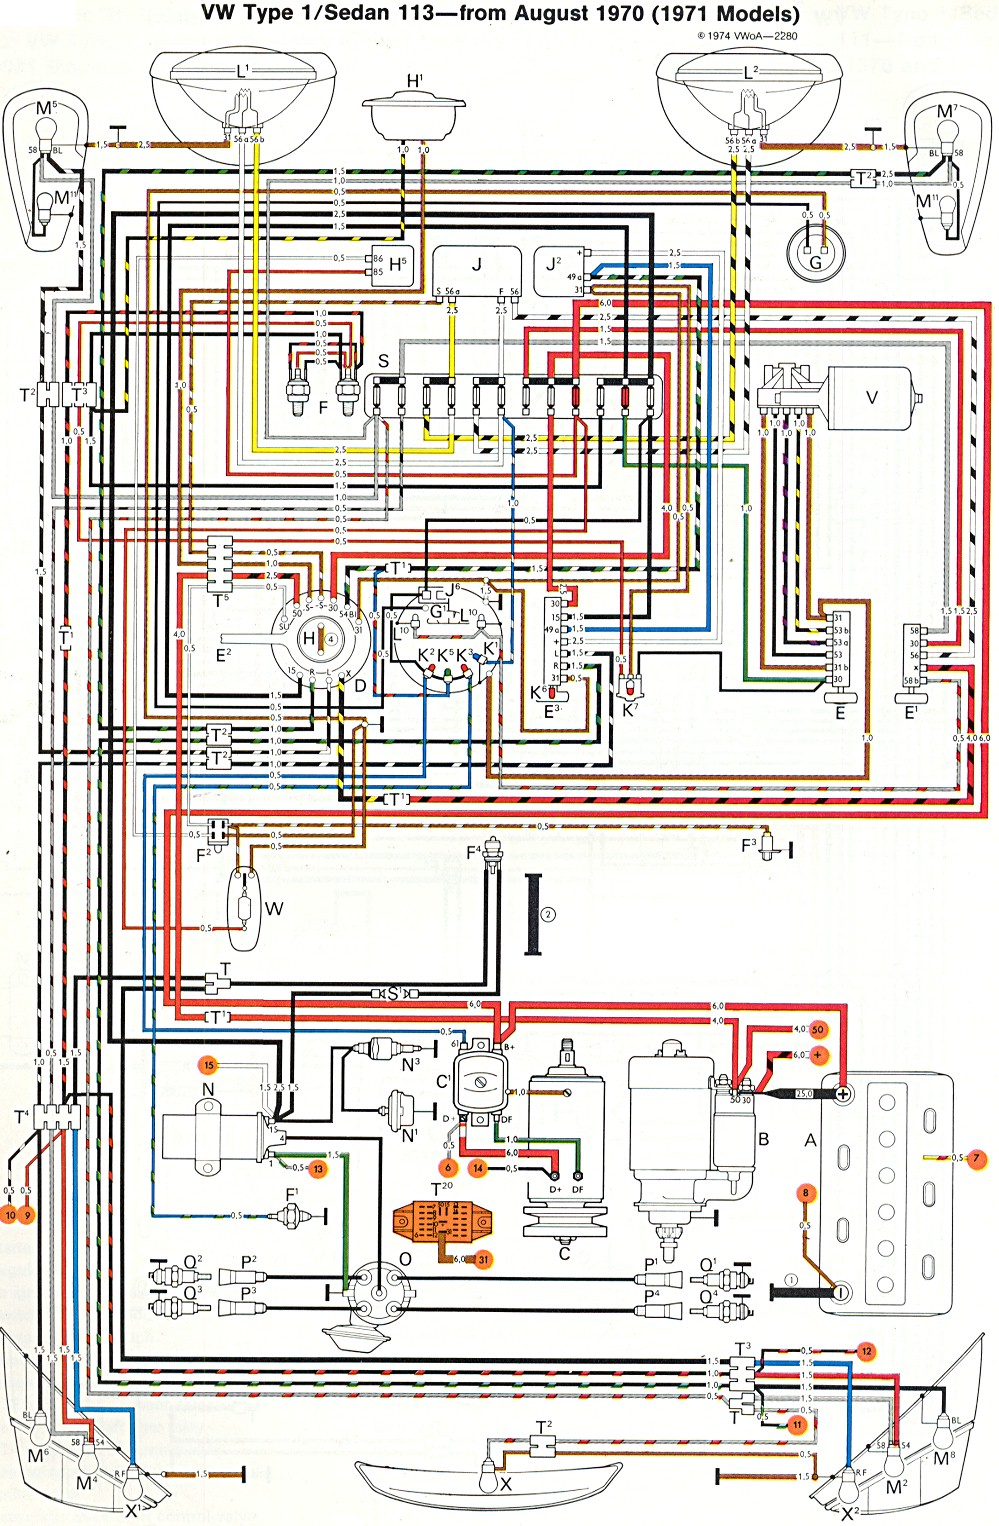 bug_super_71 1971 super beetle wiring diagram thegoldenbug com 76 vw beetle wiring diagram at edmiracle.co